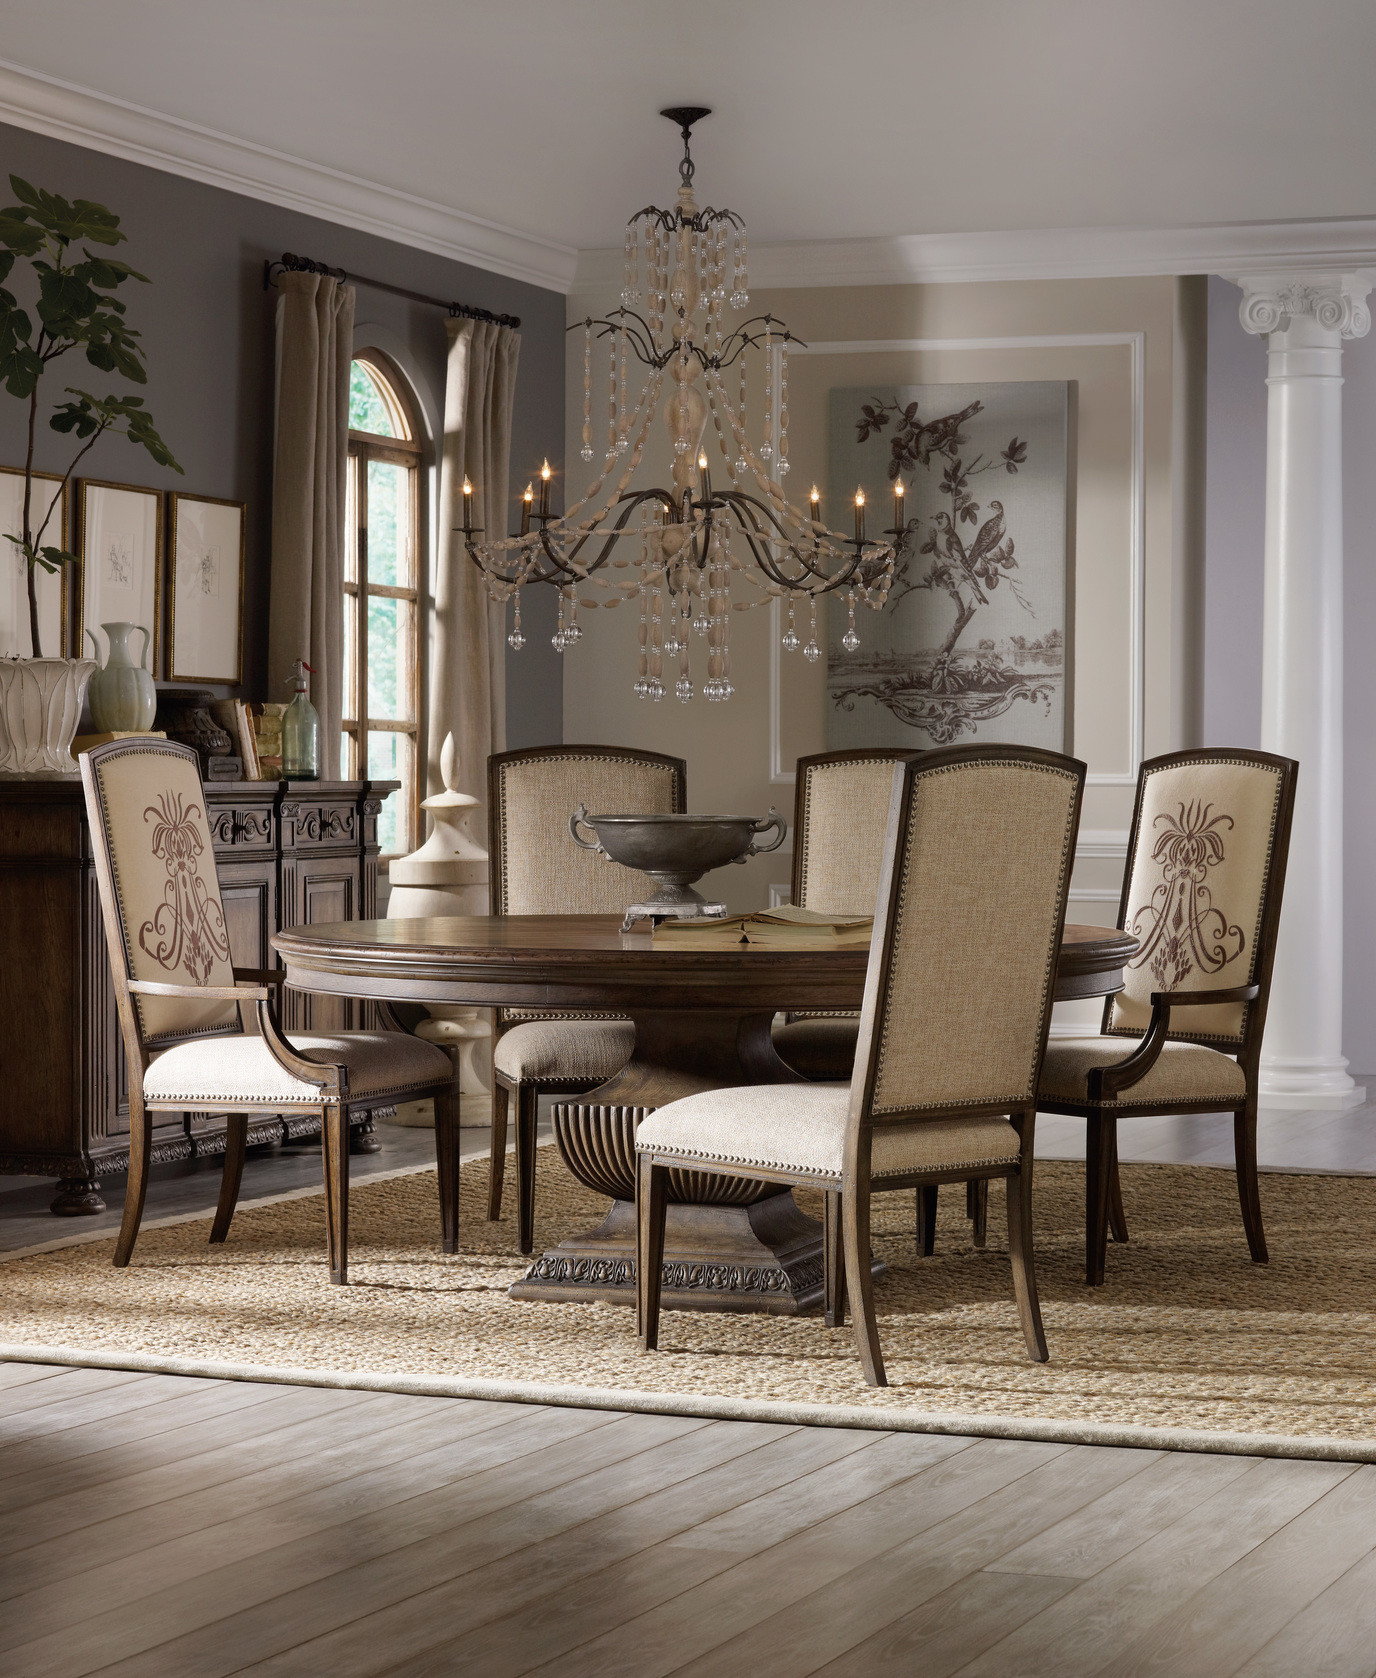 Best ideas about Dining Room Furniture . Save or Pin Rhapsody 72 Inch Round Table Dining Room Collection by Now.